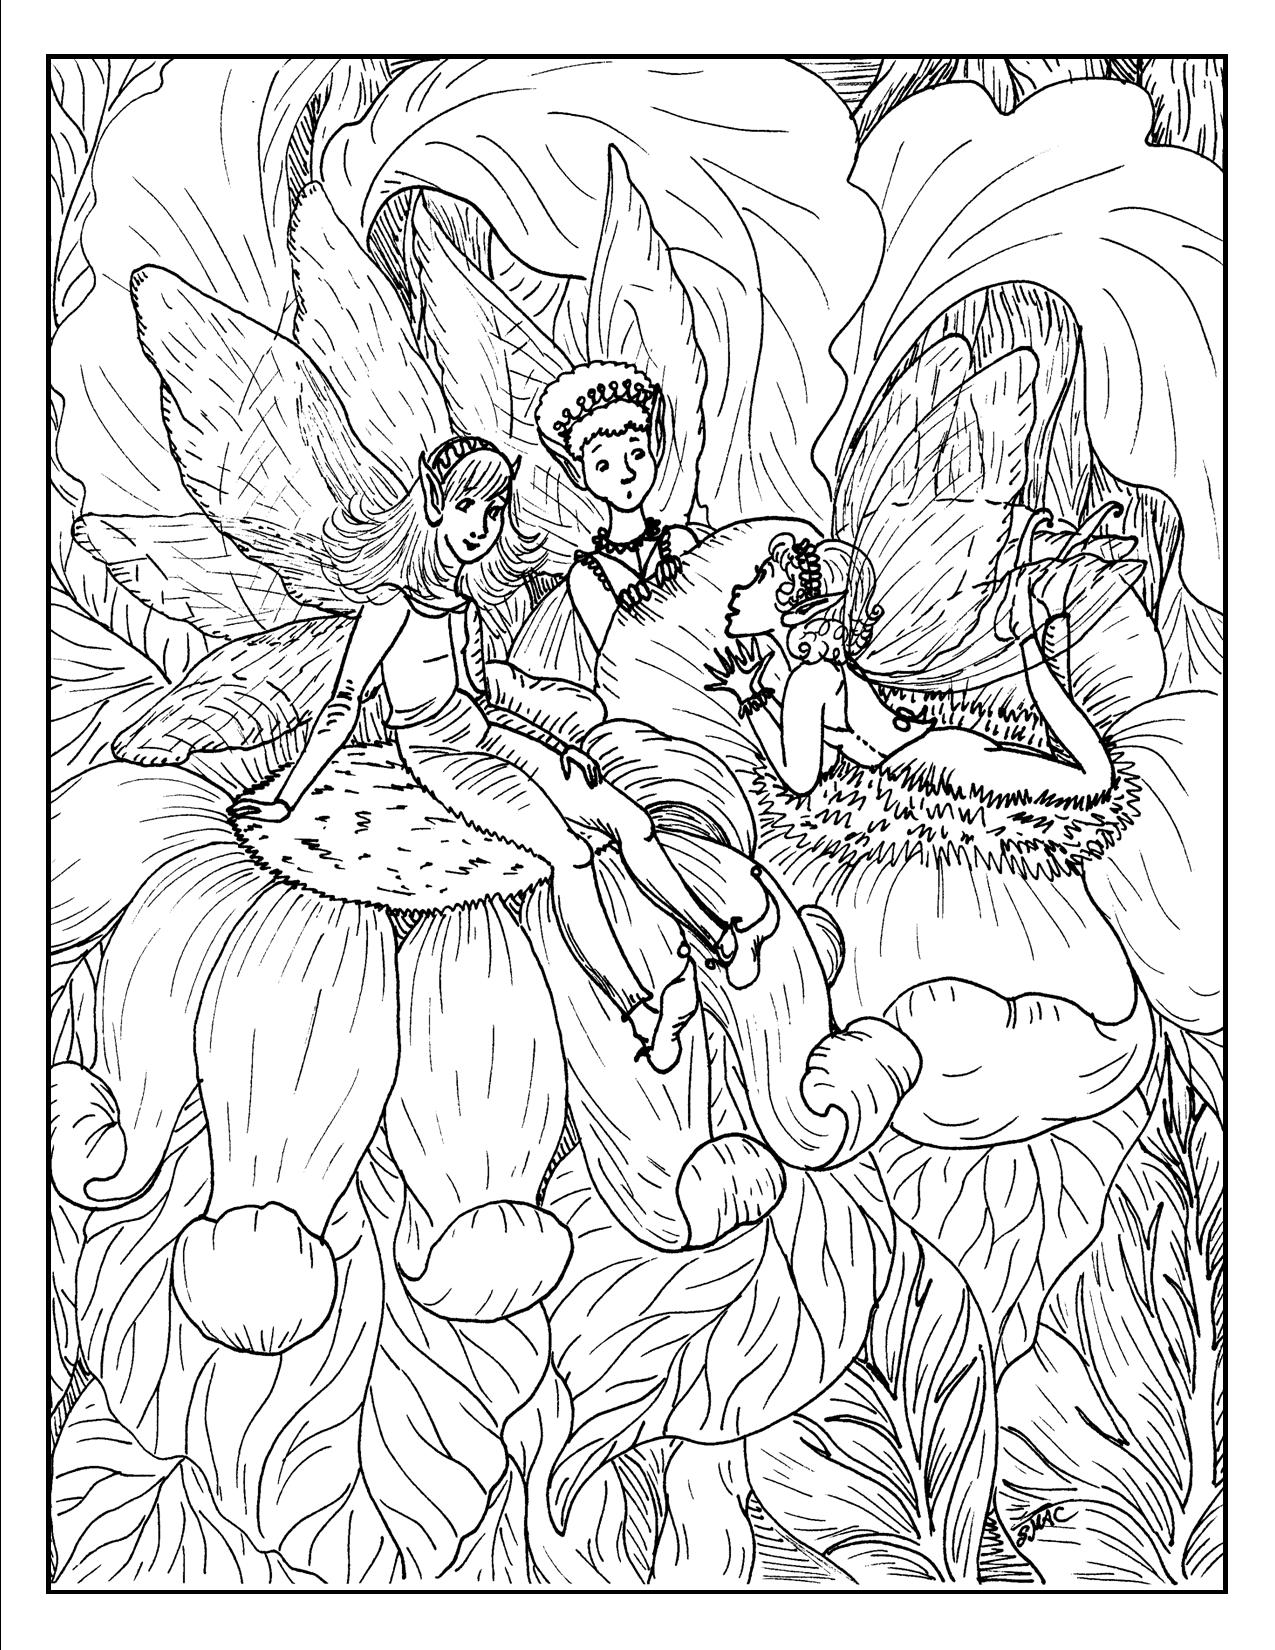 fantasy coloring pages advanced fantasy coloring pages at getdrawings free download fantasy pages coloring